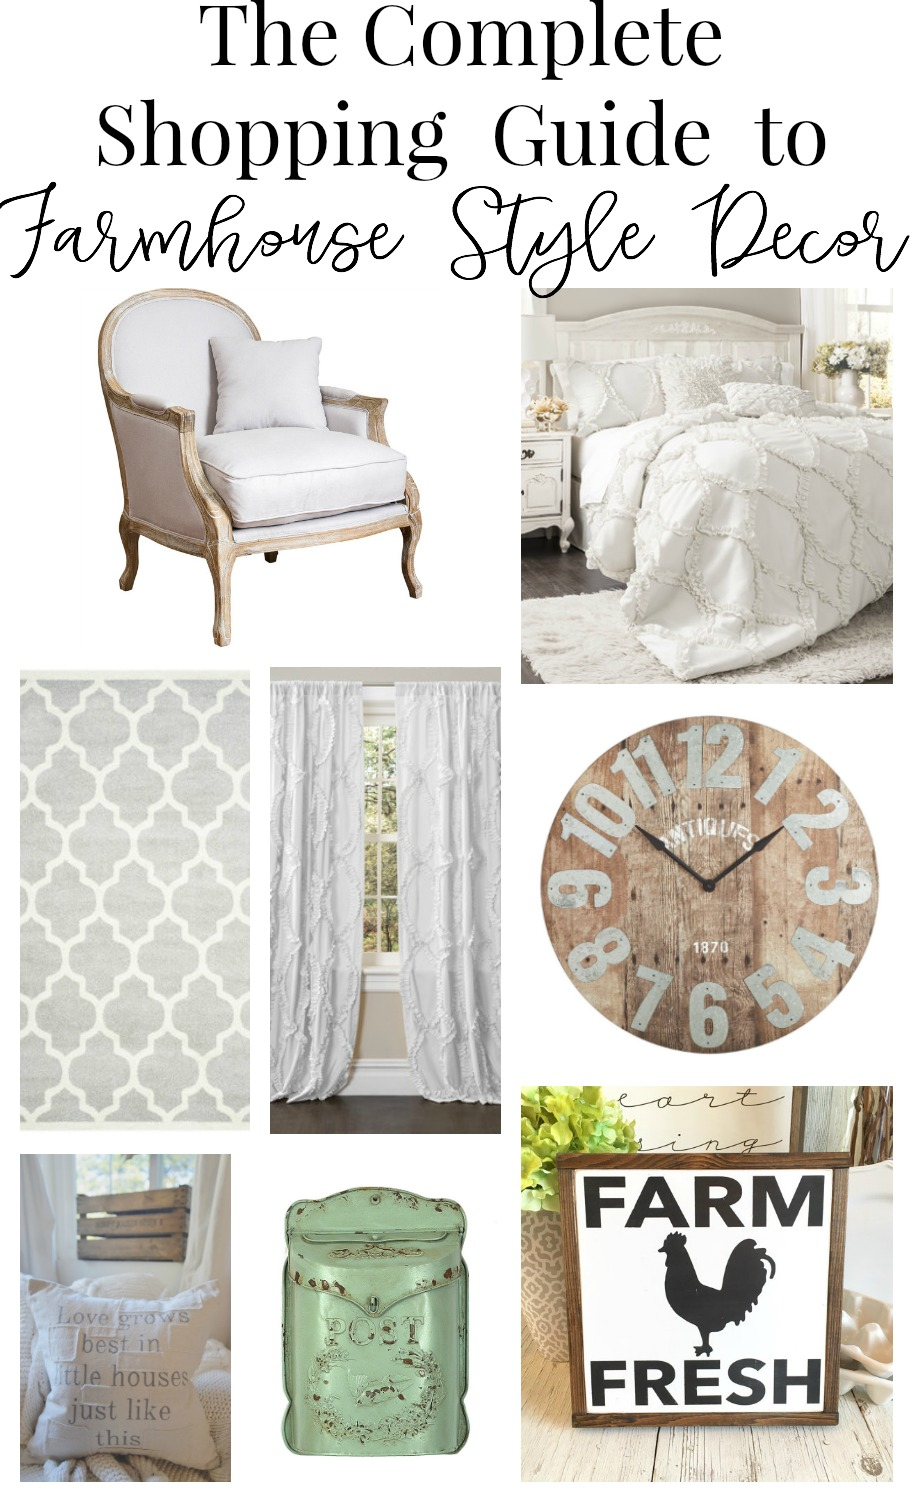 The Complete Shopping Guide to Affordable Farmhouse Style Decor